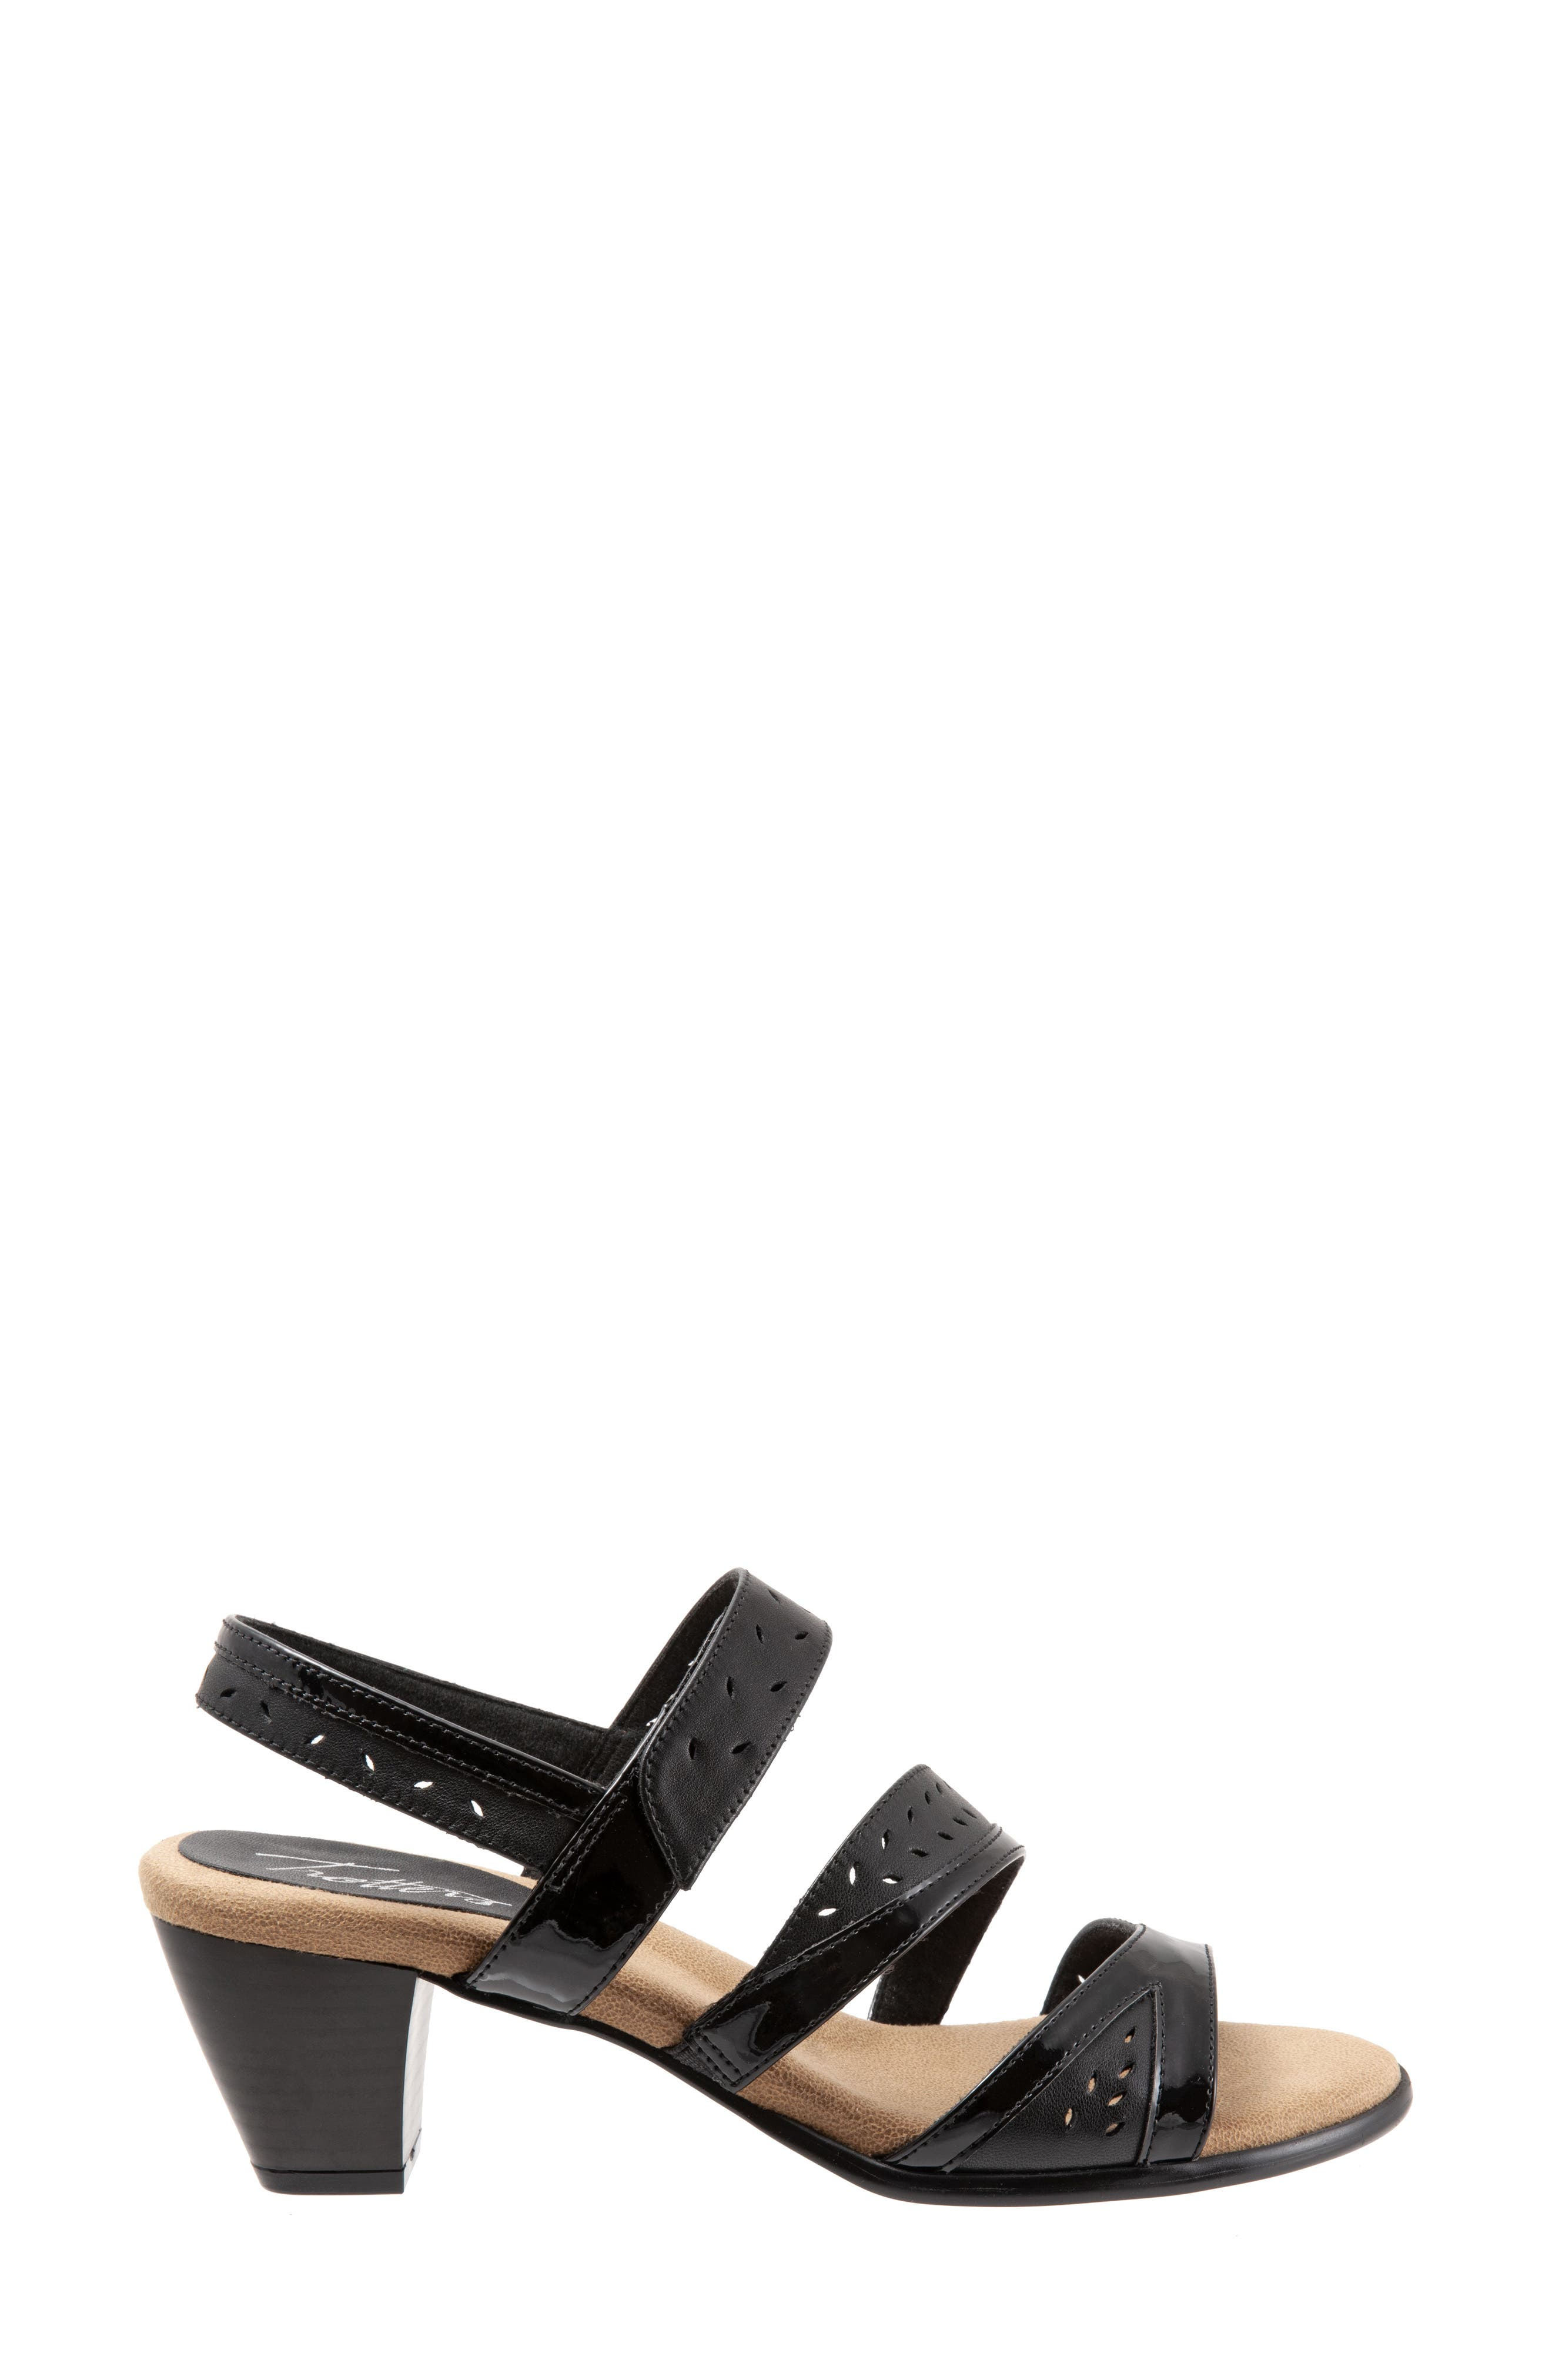 TROTTERS, Marvie Perforated Strappy Sandal, Alternate thumbnail 3, color, BLACK LEATHER